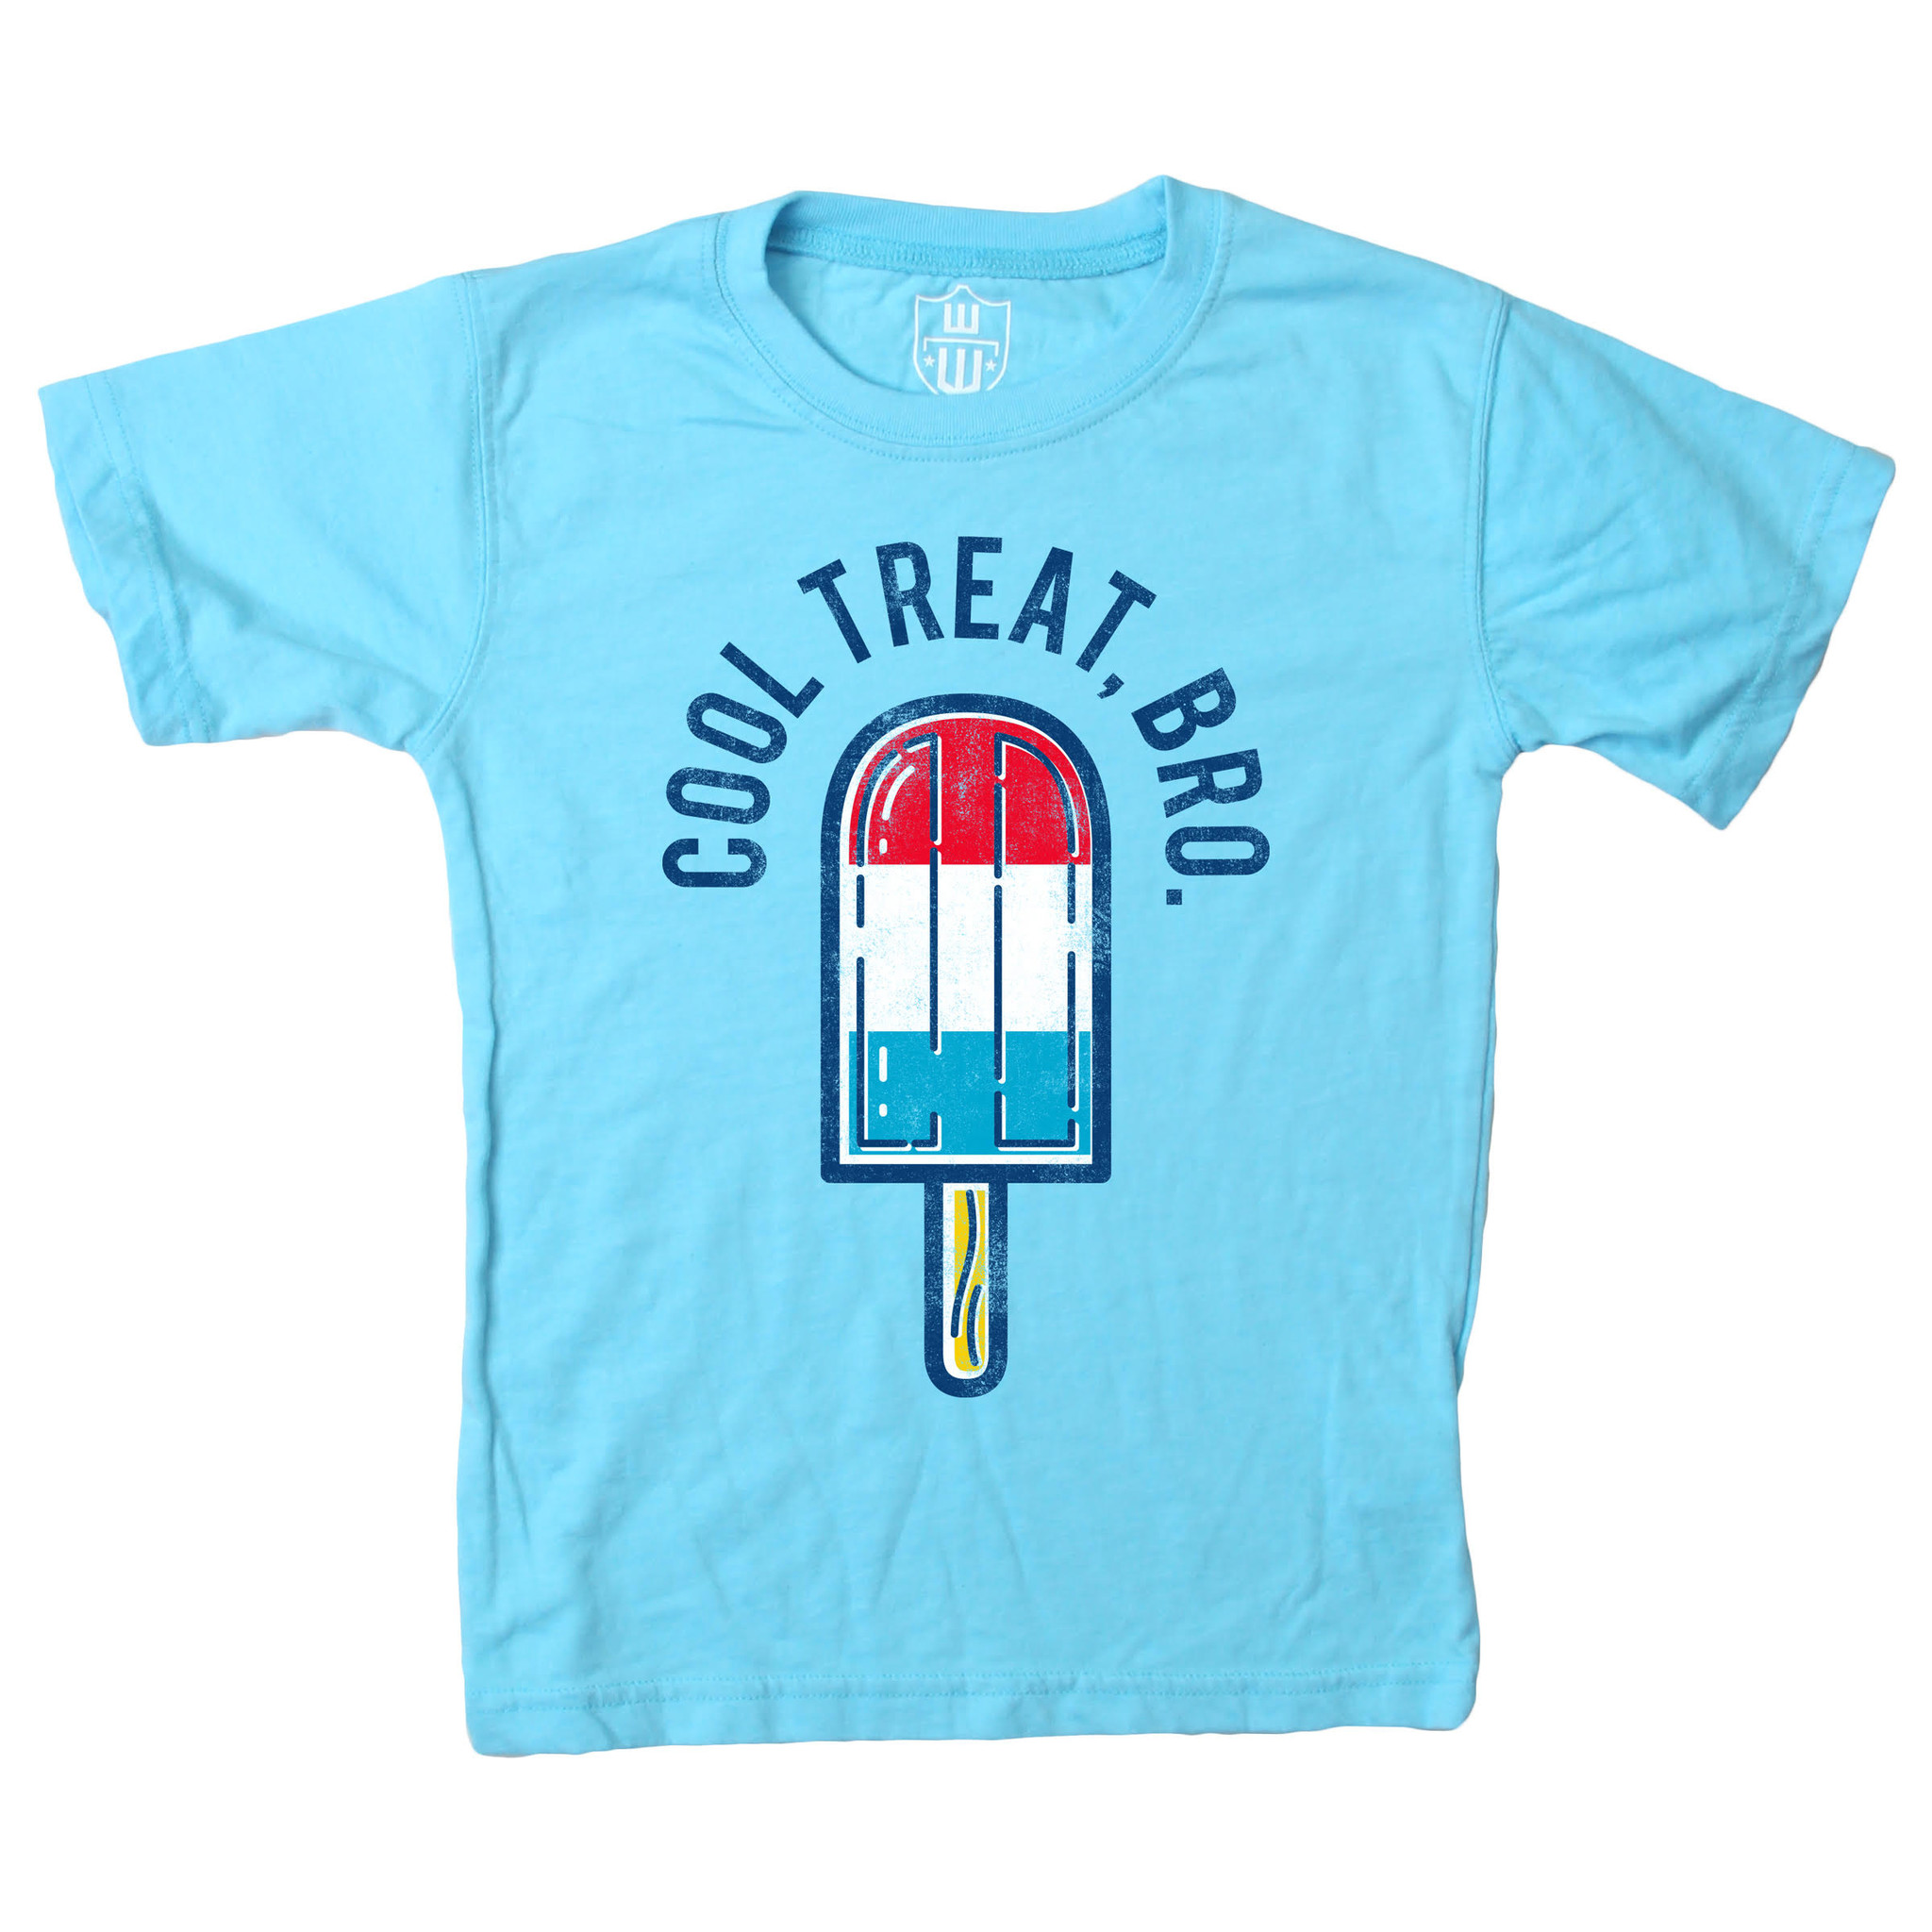 Wes And Willy Cool Treat Bro SS Tee VU Blue Blend